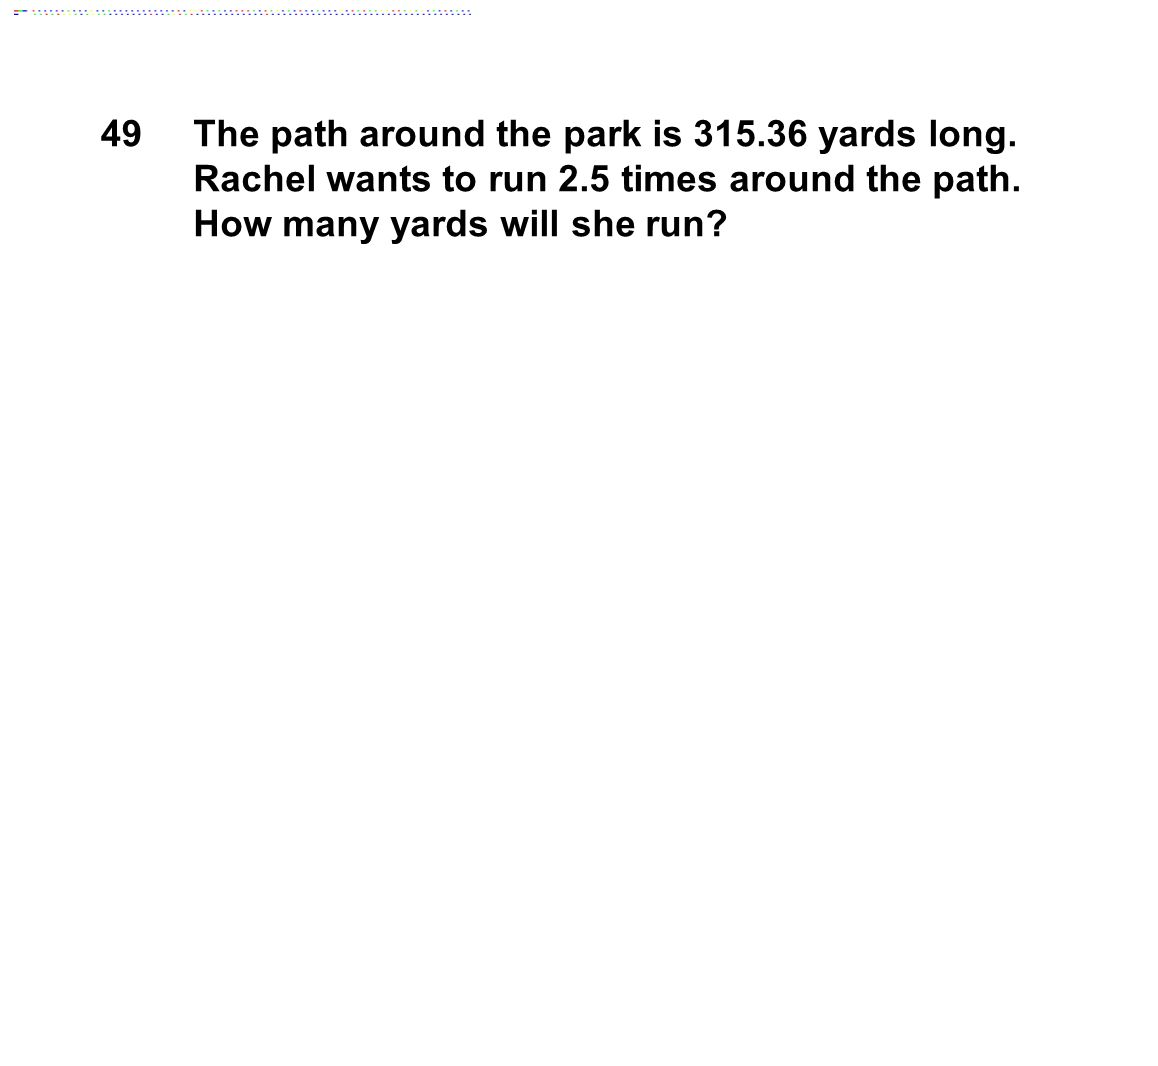 49 The path around the park is 315.36 yards long. Rachel wants to run 2.5 times around the path. How many yards will she run?